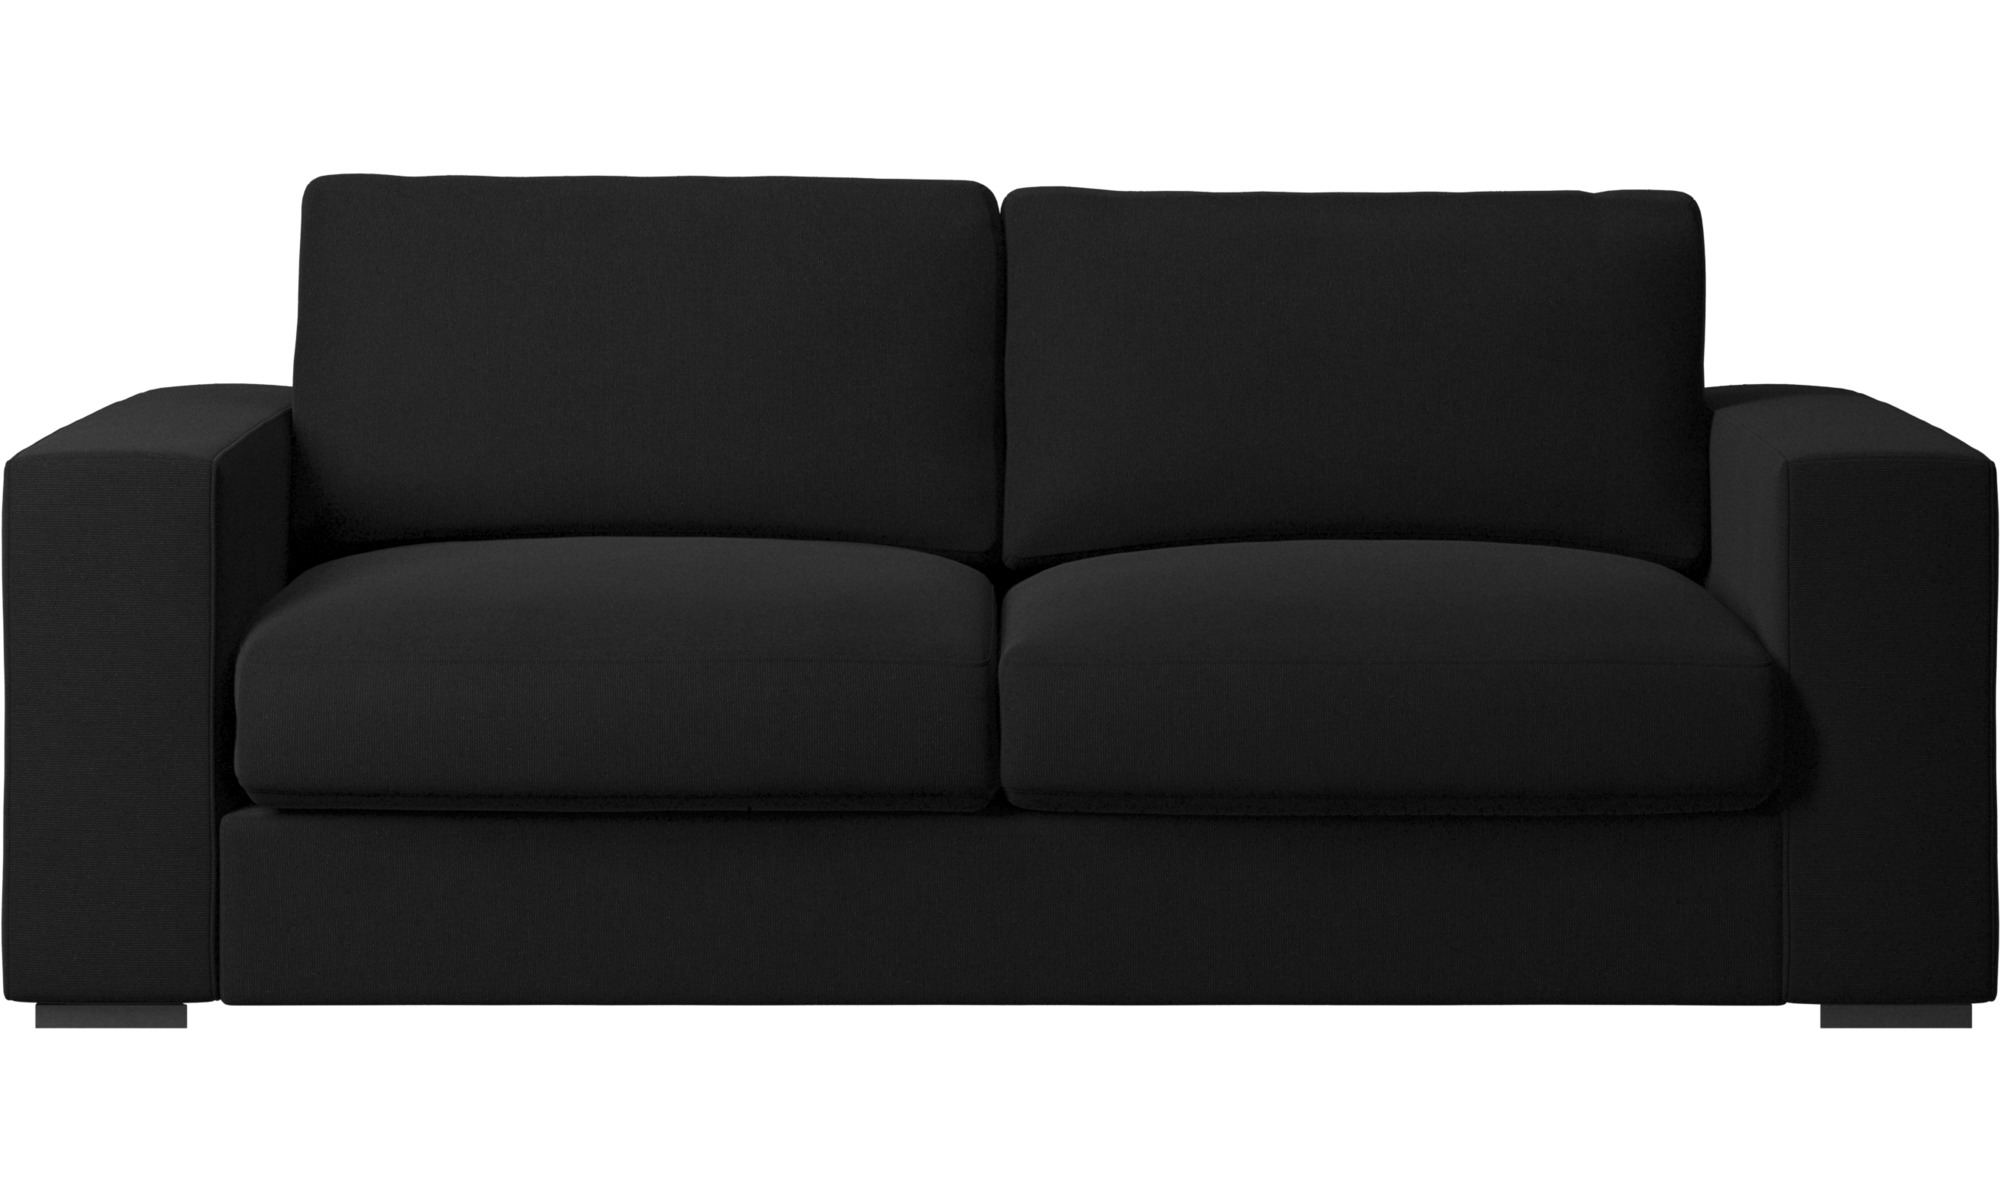 2 5 seater sofas cenova sofa boconcept for Sofa 7 seater